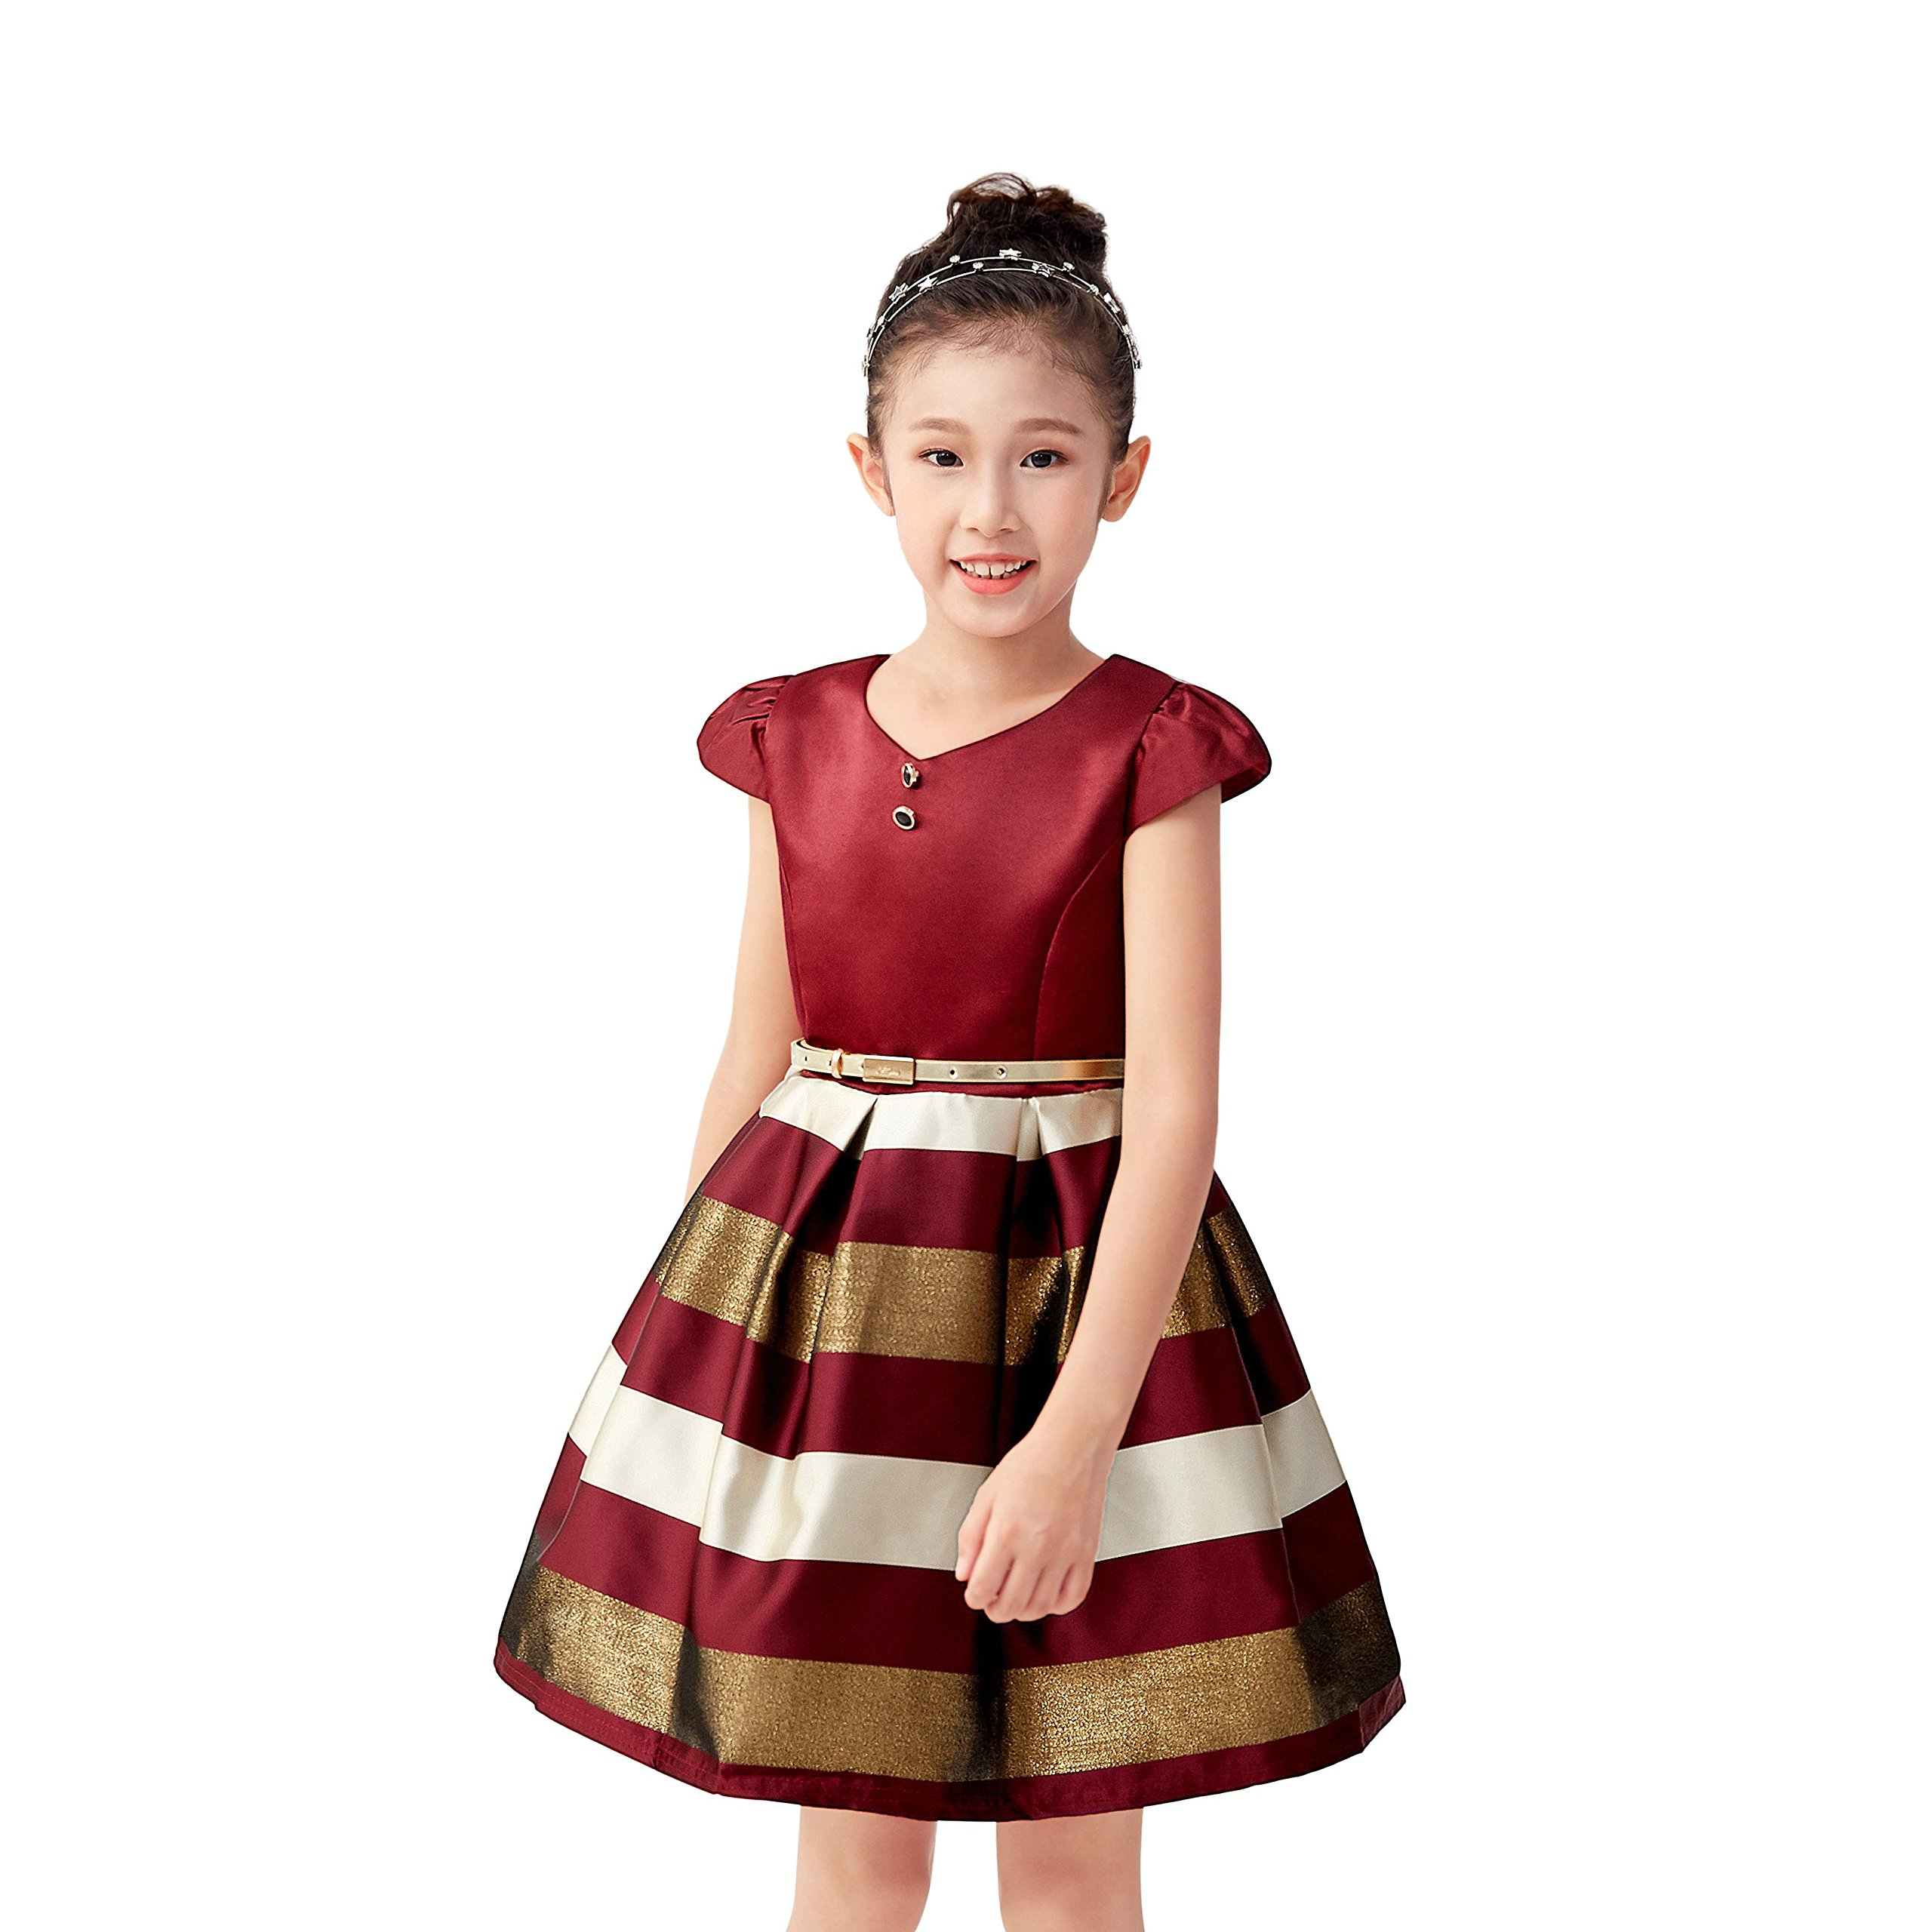 Kids Beauty 5-6 Party Dresses Children Pageant Dresses Little Girls Size 6 Toddler Baby Wedding Gown Little Girls Dresses for Wedding Guest (Burgundy Stripe, 6)